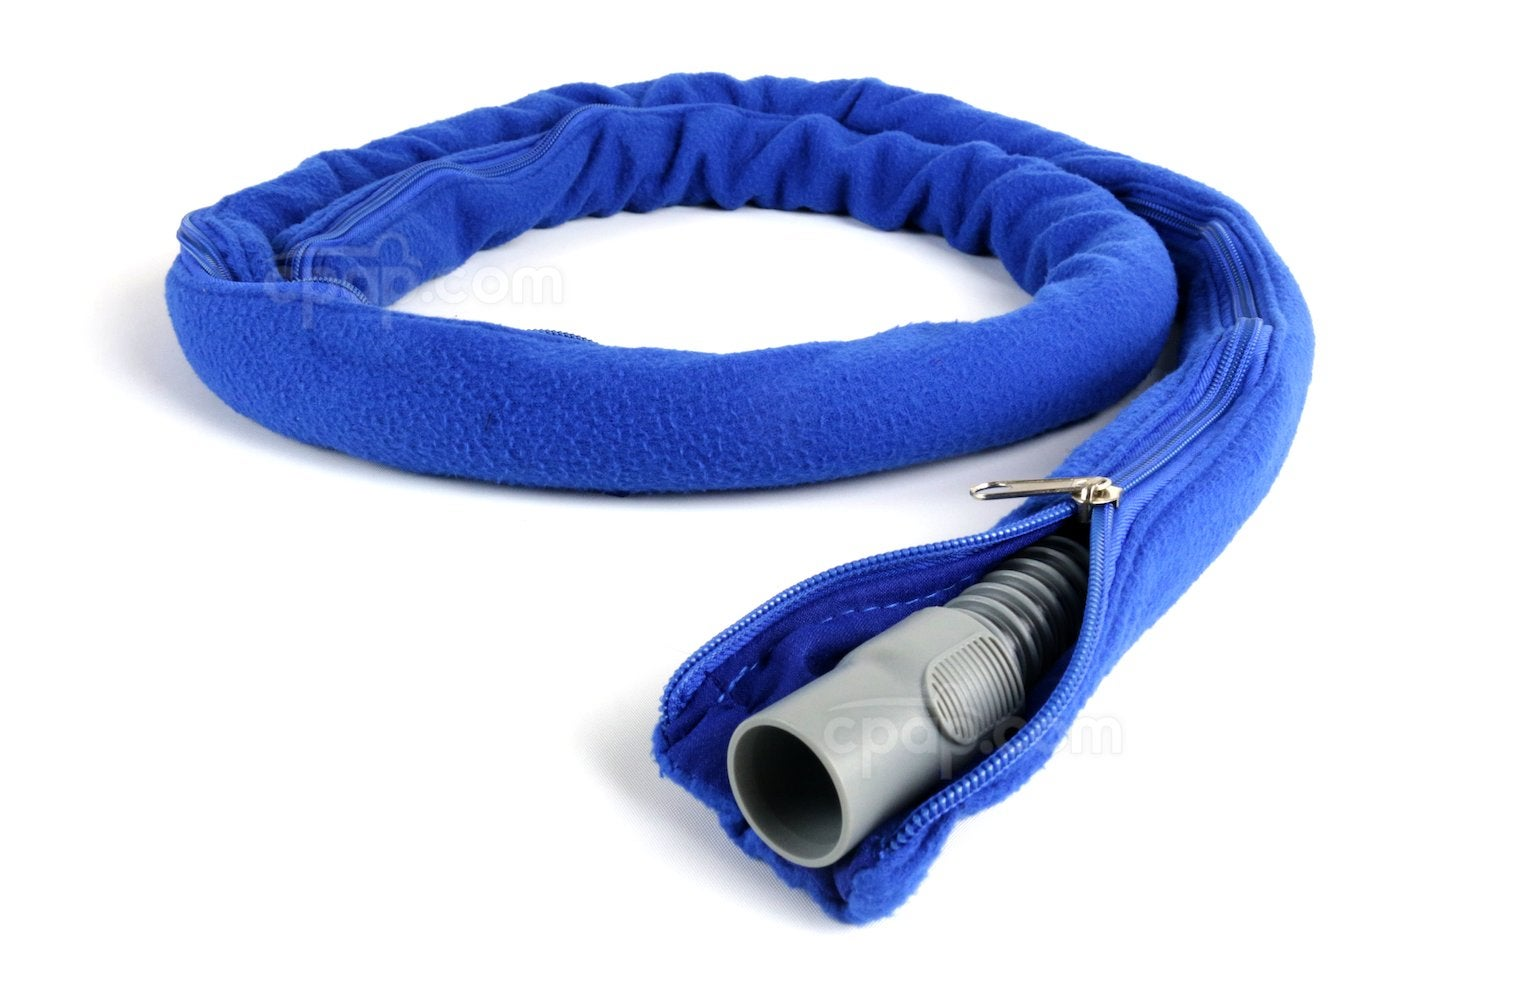 Tender Tubing Hose Cover (CPAP Hose Not Included)